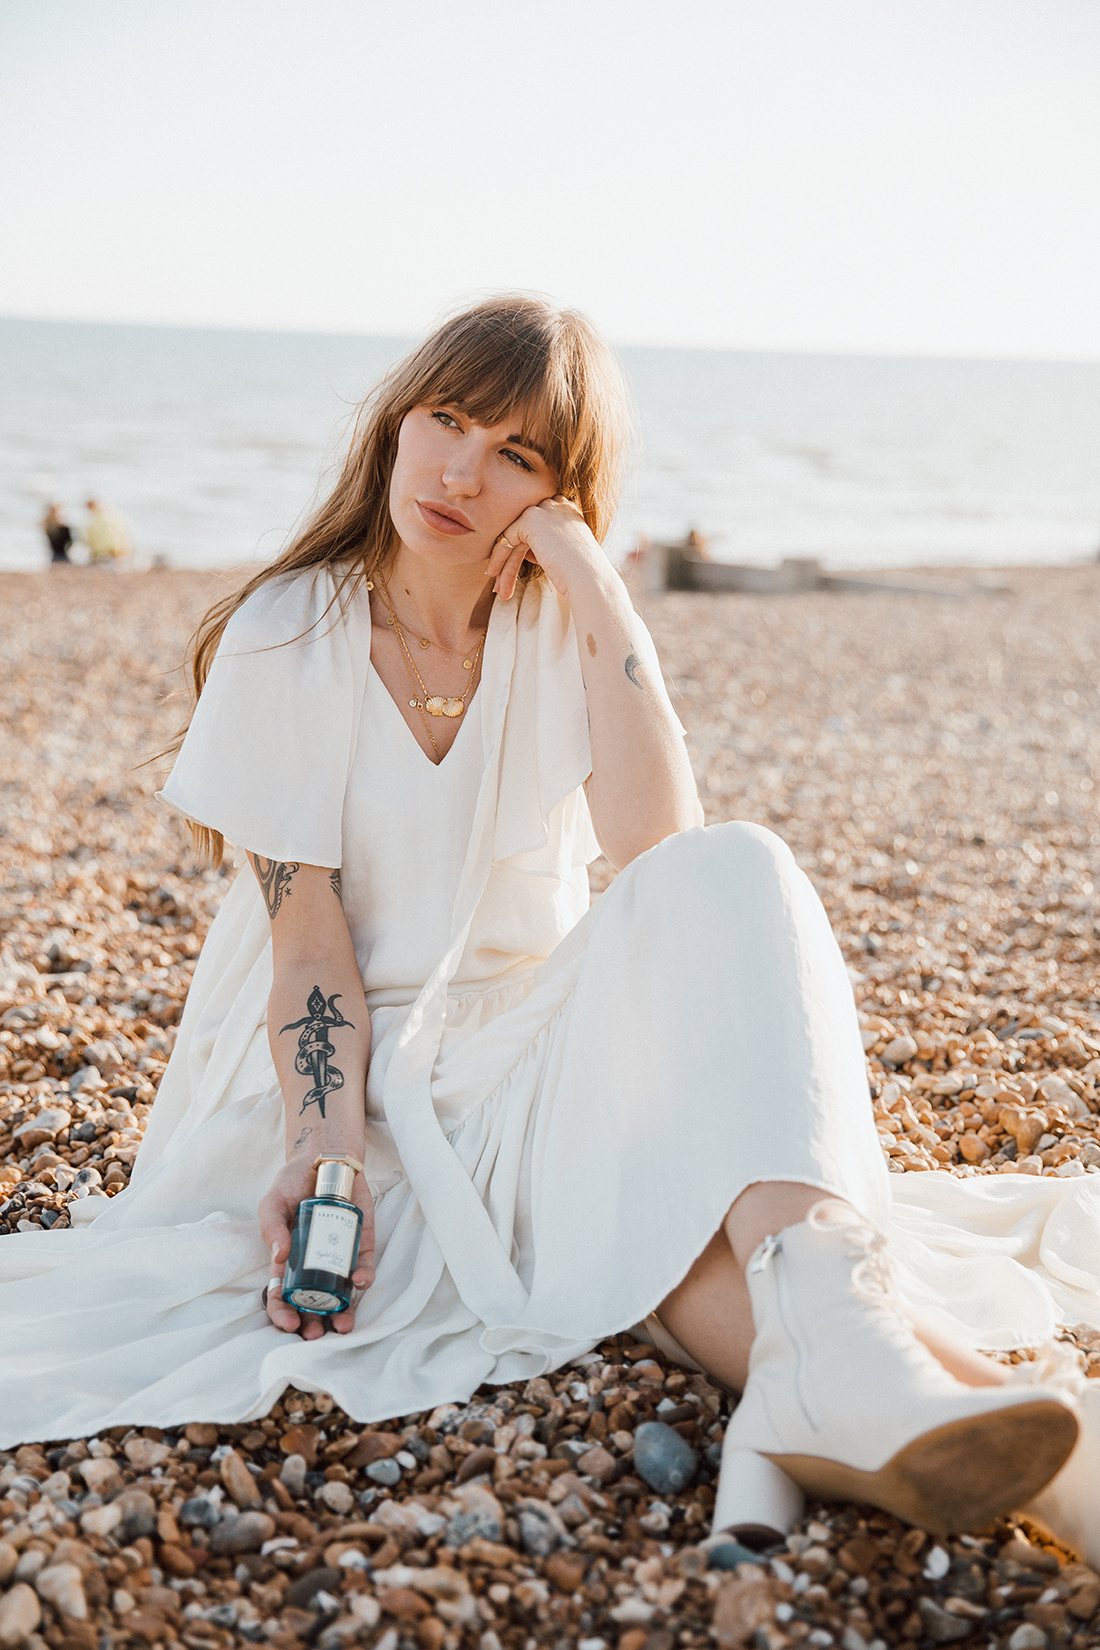 Blogger fashion photoshoot of Sara Waiste in Brighton Beach by London photographer Ailera Stone